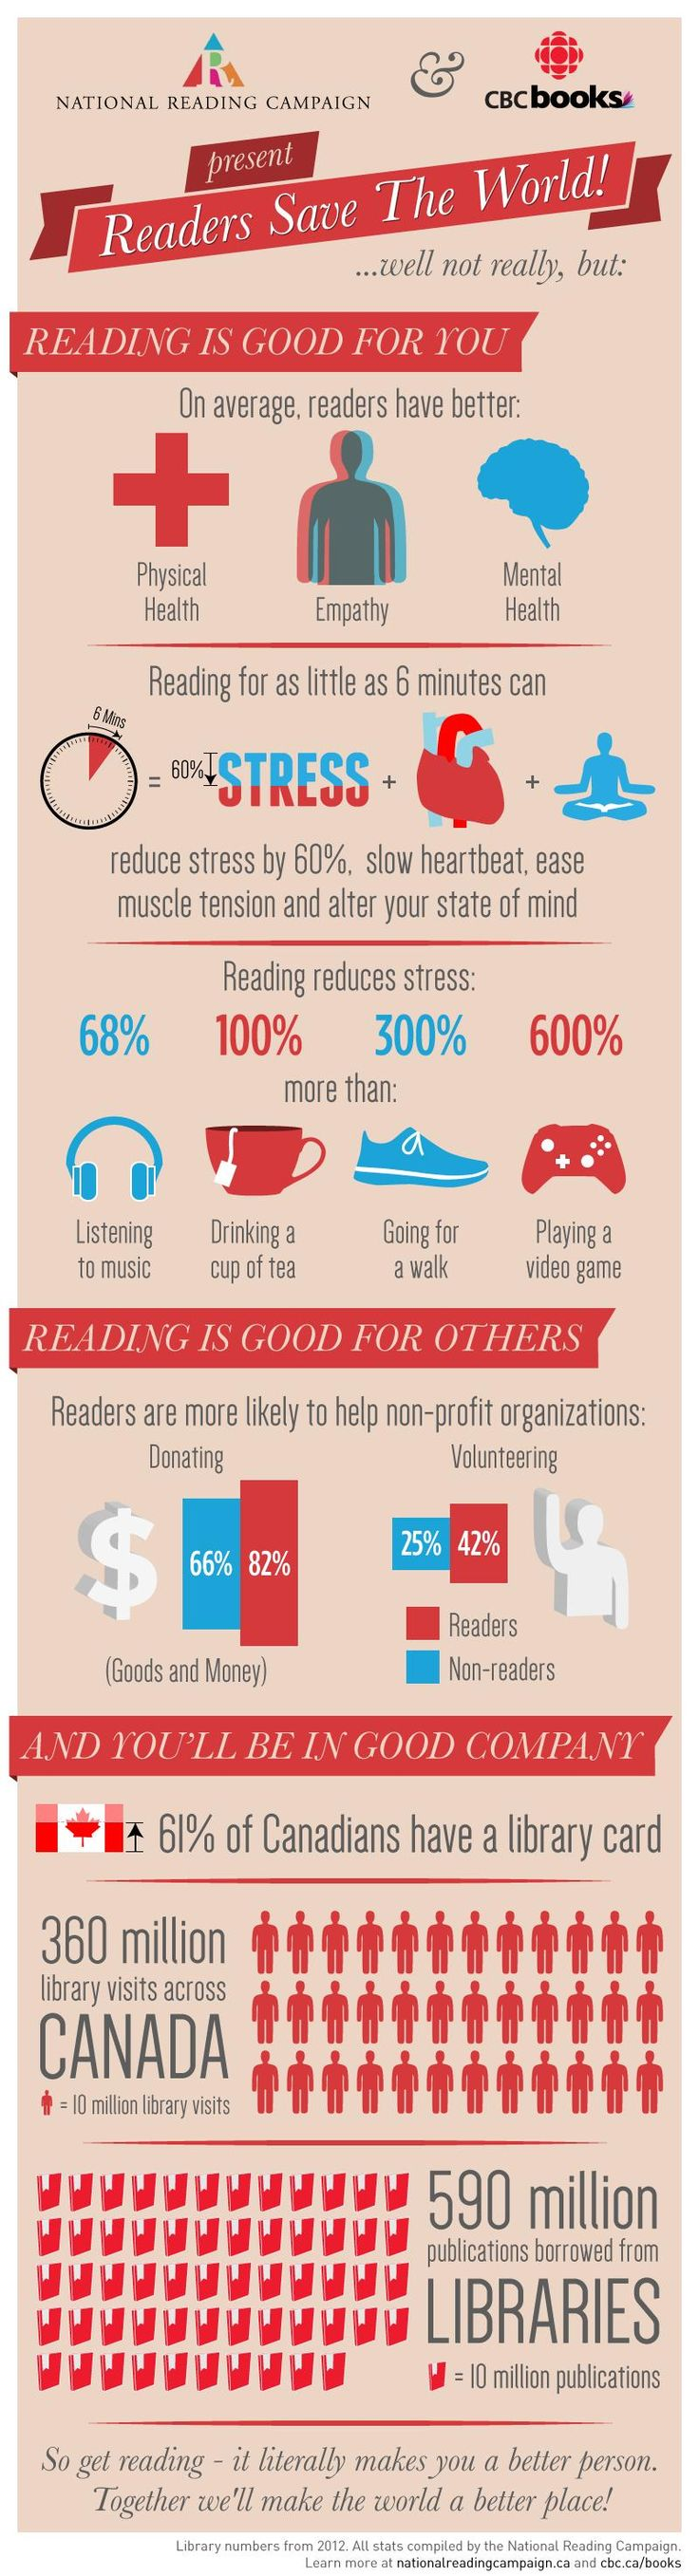 National Reading campaign and CBCBooks present Readers Save The World! ... well, not really, but:  Reading is good for you....